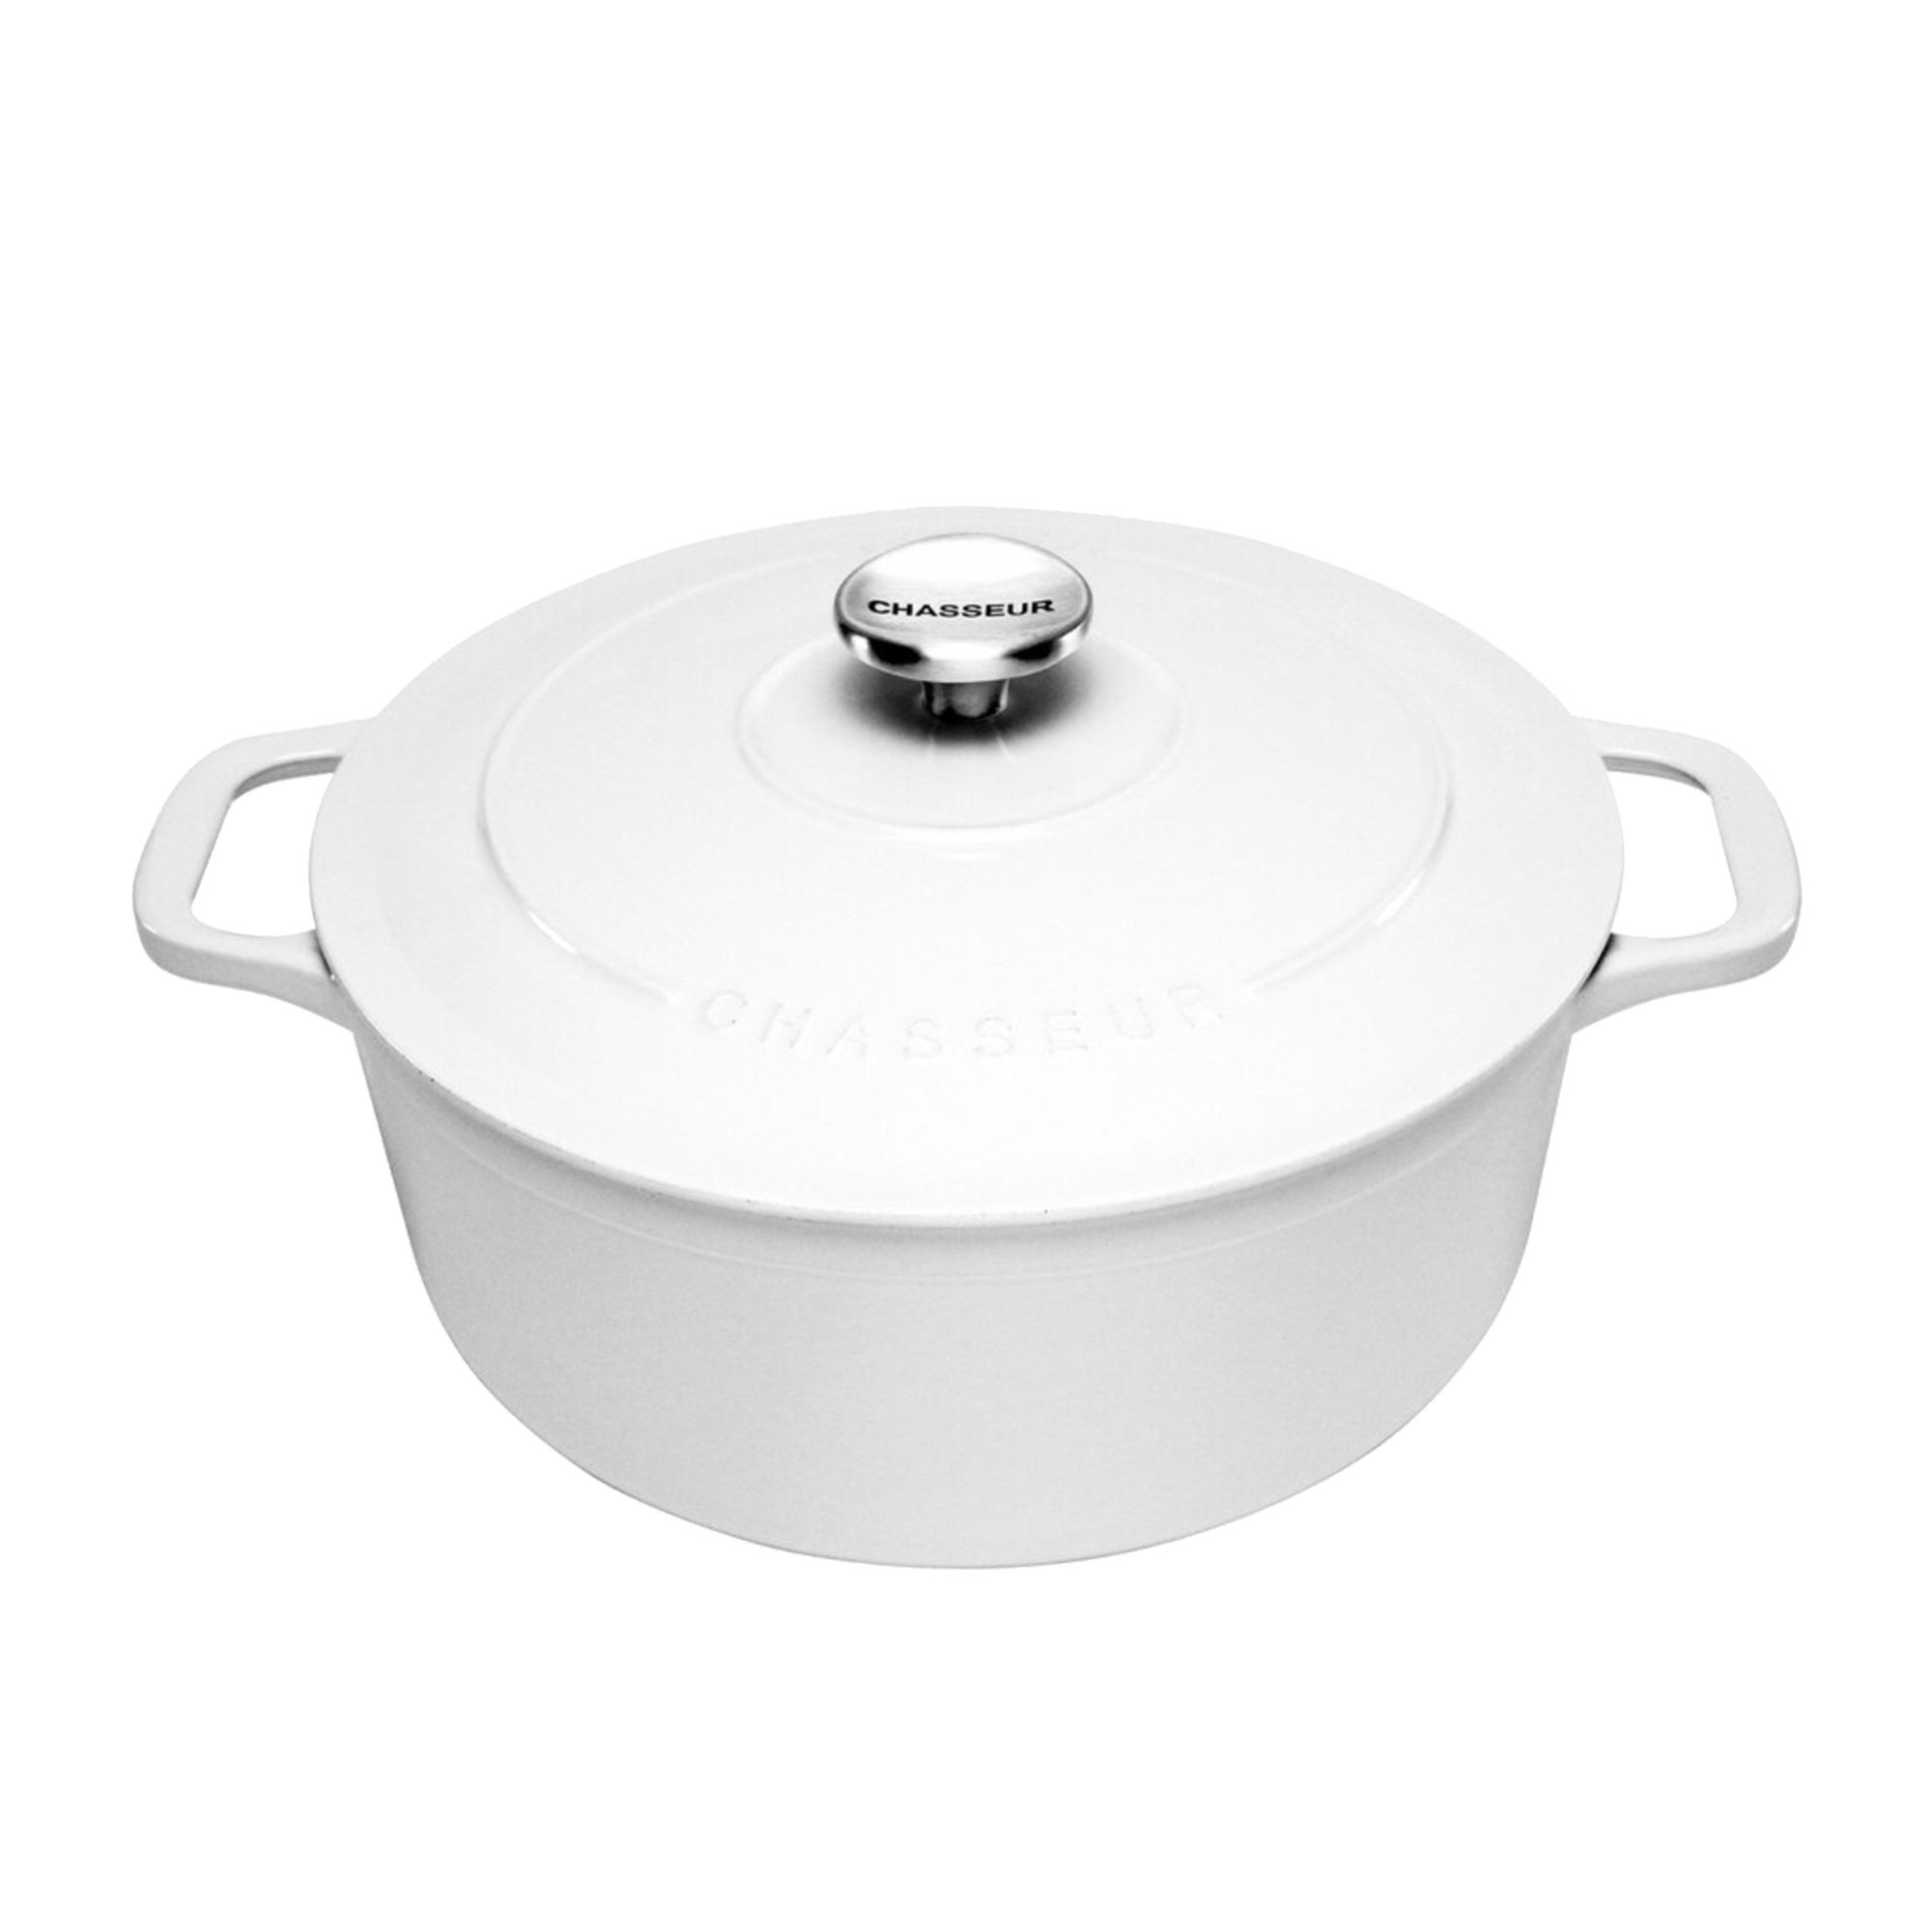 Chasseur Round French Oven 26cm - 5L Brilliant White